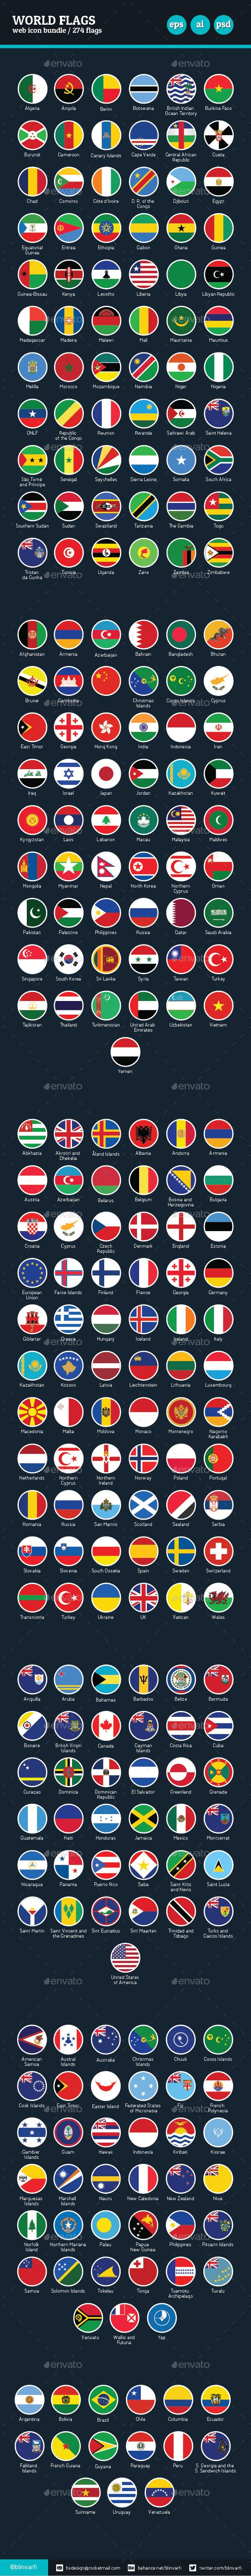 Flags of the World - Vector Icon Bundle - Web Icons